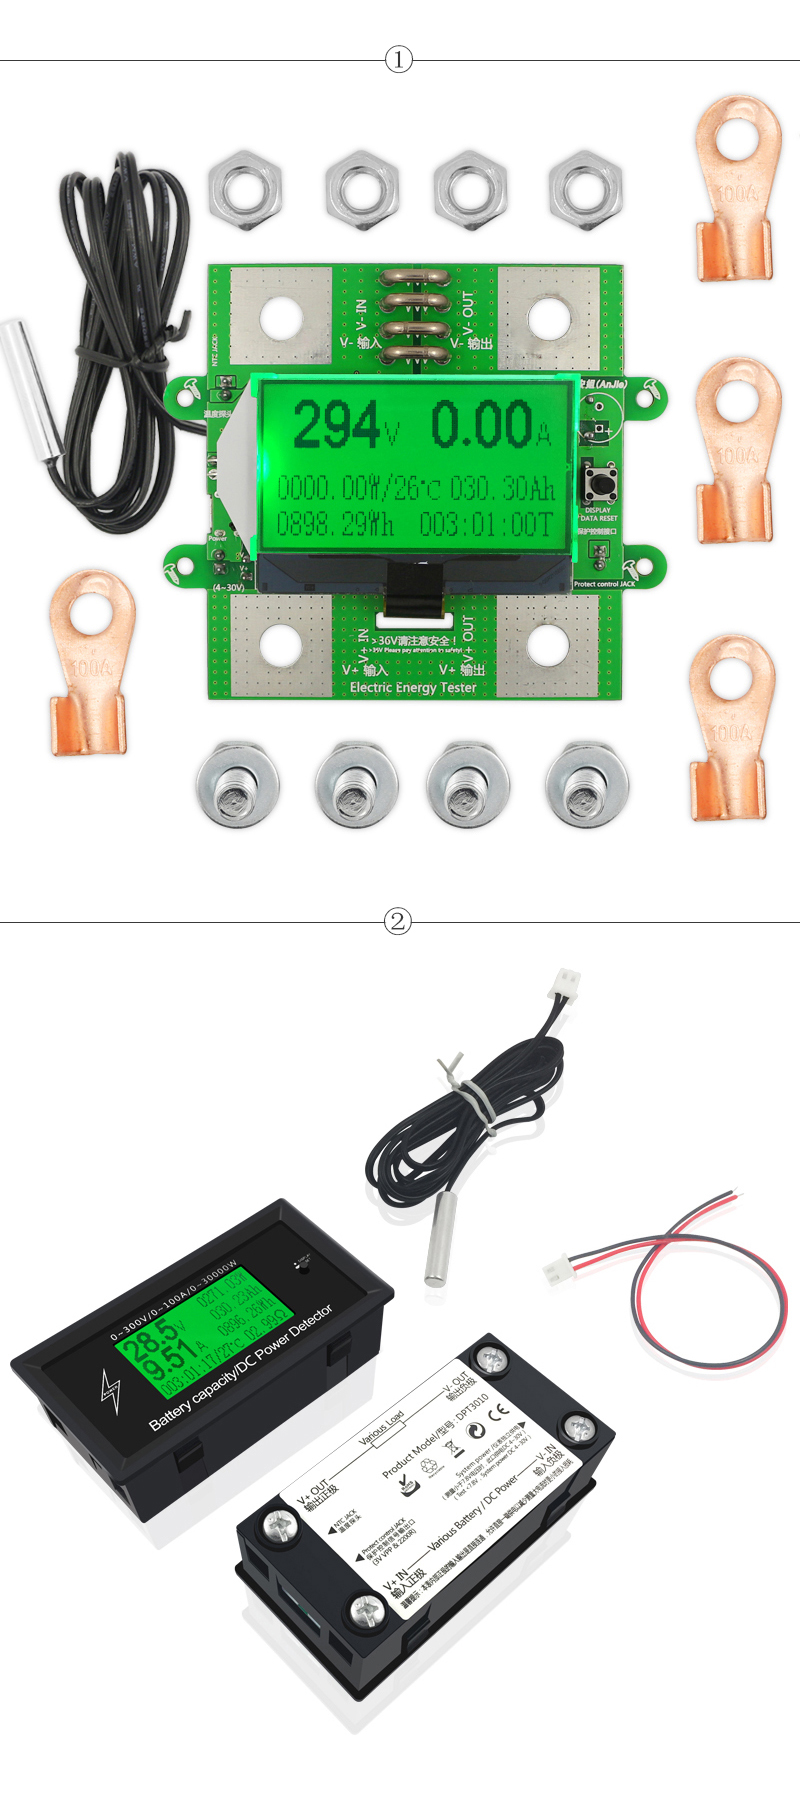 300v 100a Dc Digital Voltmeter Ammeter Voltage Meter Car Battery Also Led Matrix Circuit Diagram On 1300v100a Without The Shell Packing List 2300v100a Include